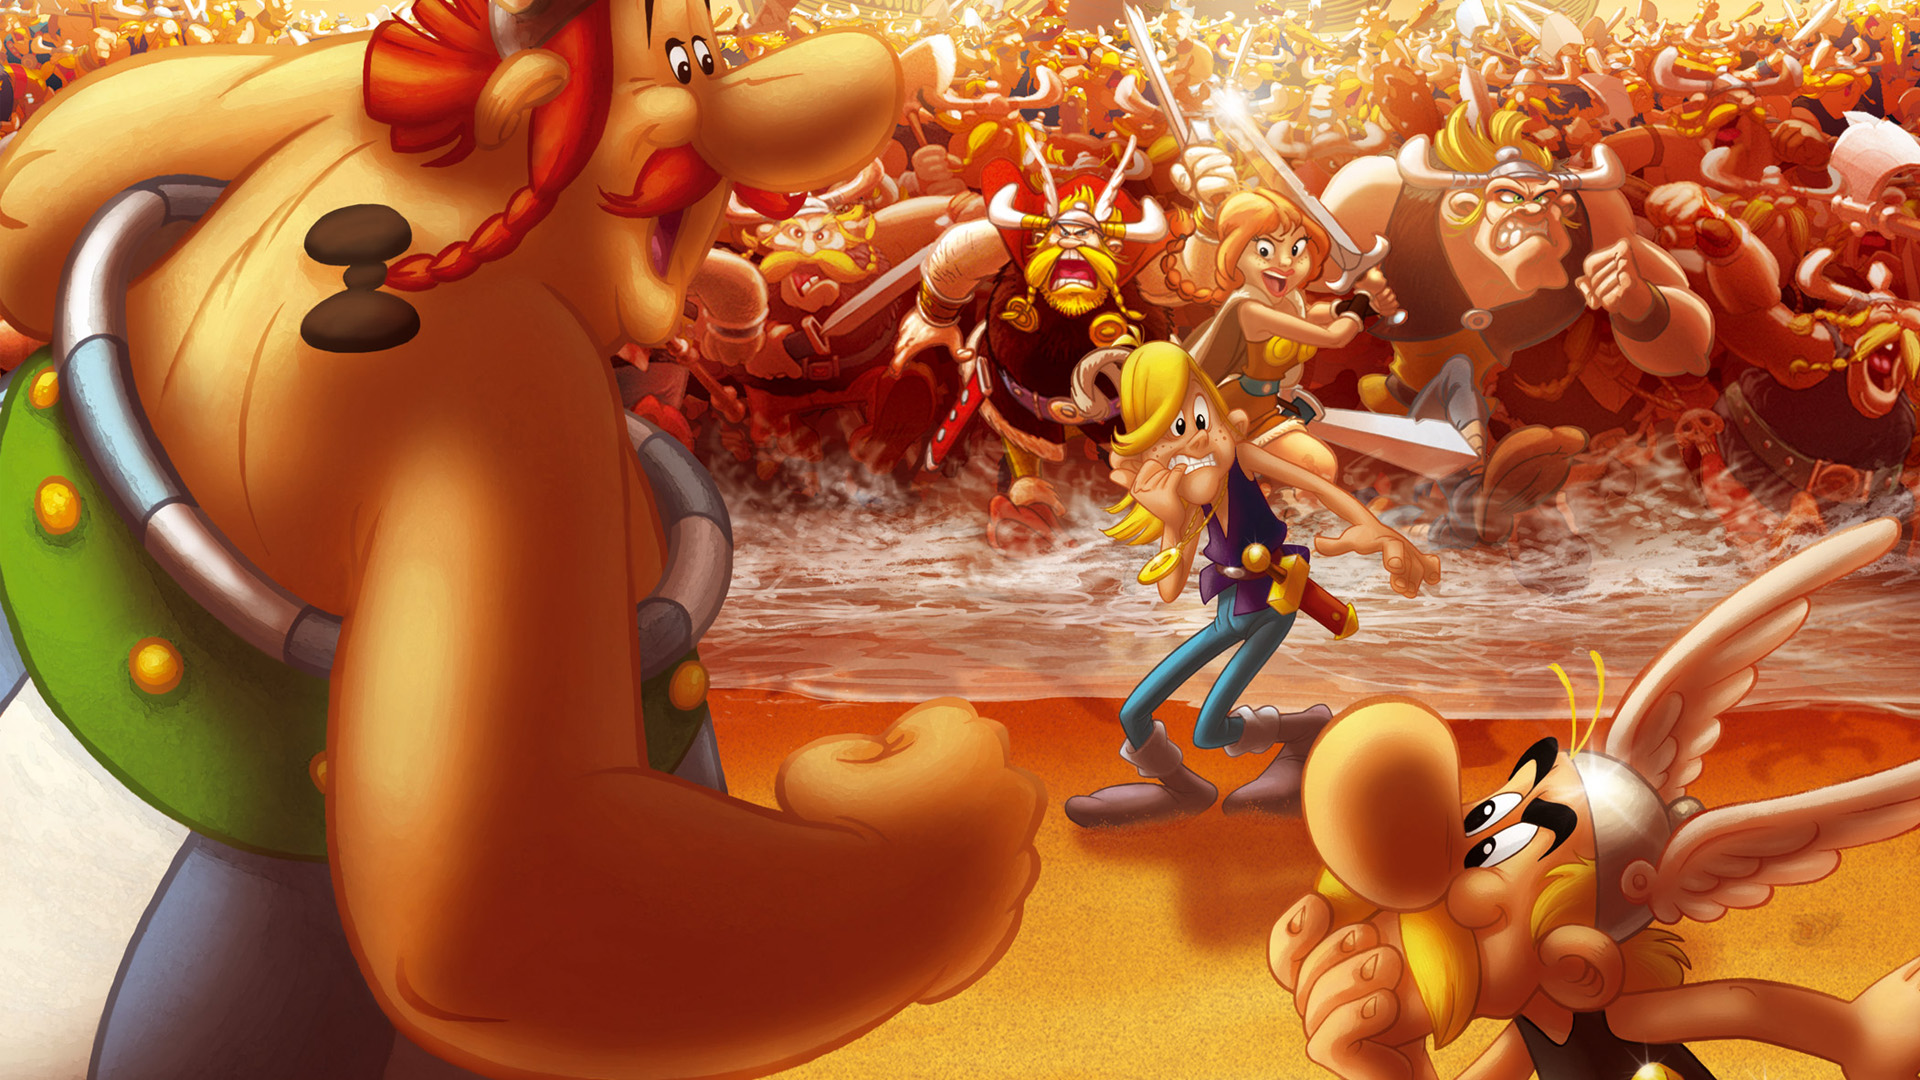 High Resolution Wallpaper | Asterix And The Vikings 1920x1080 px